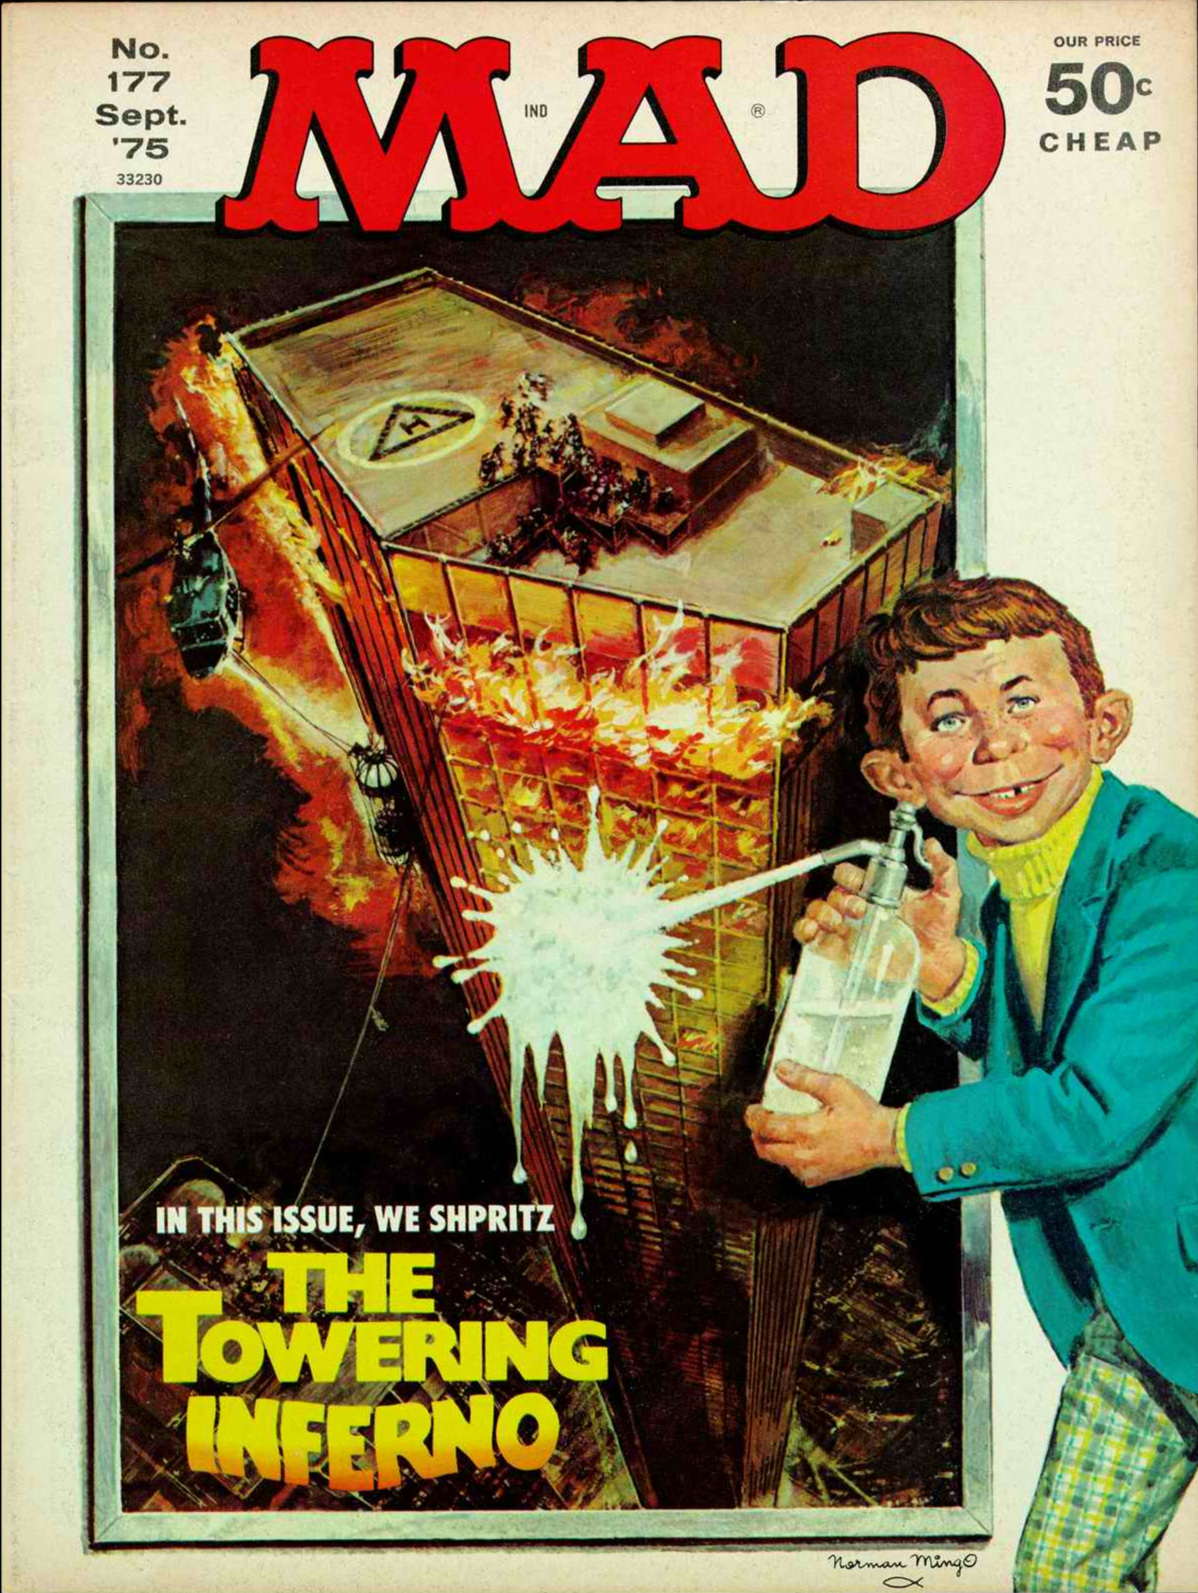 Mad  #177 (September 1975), cover